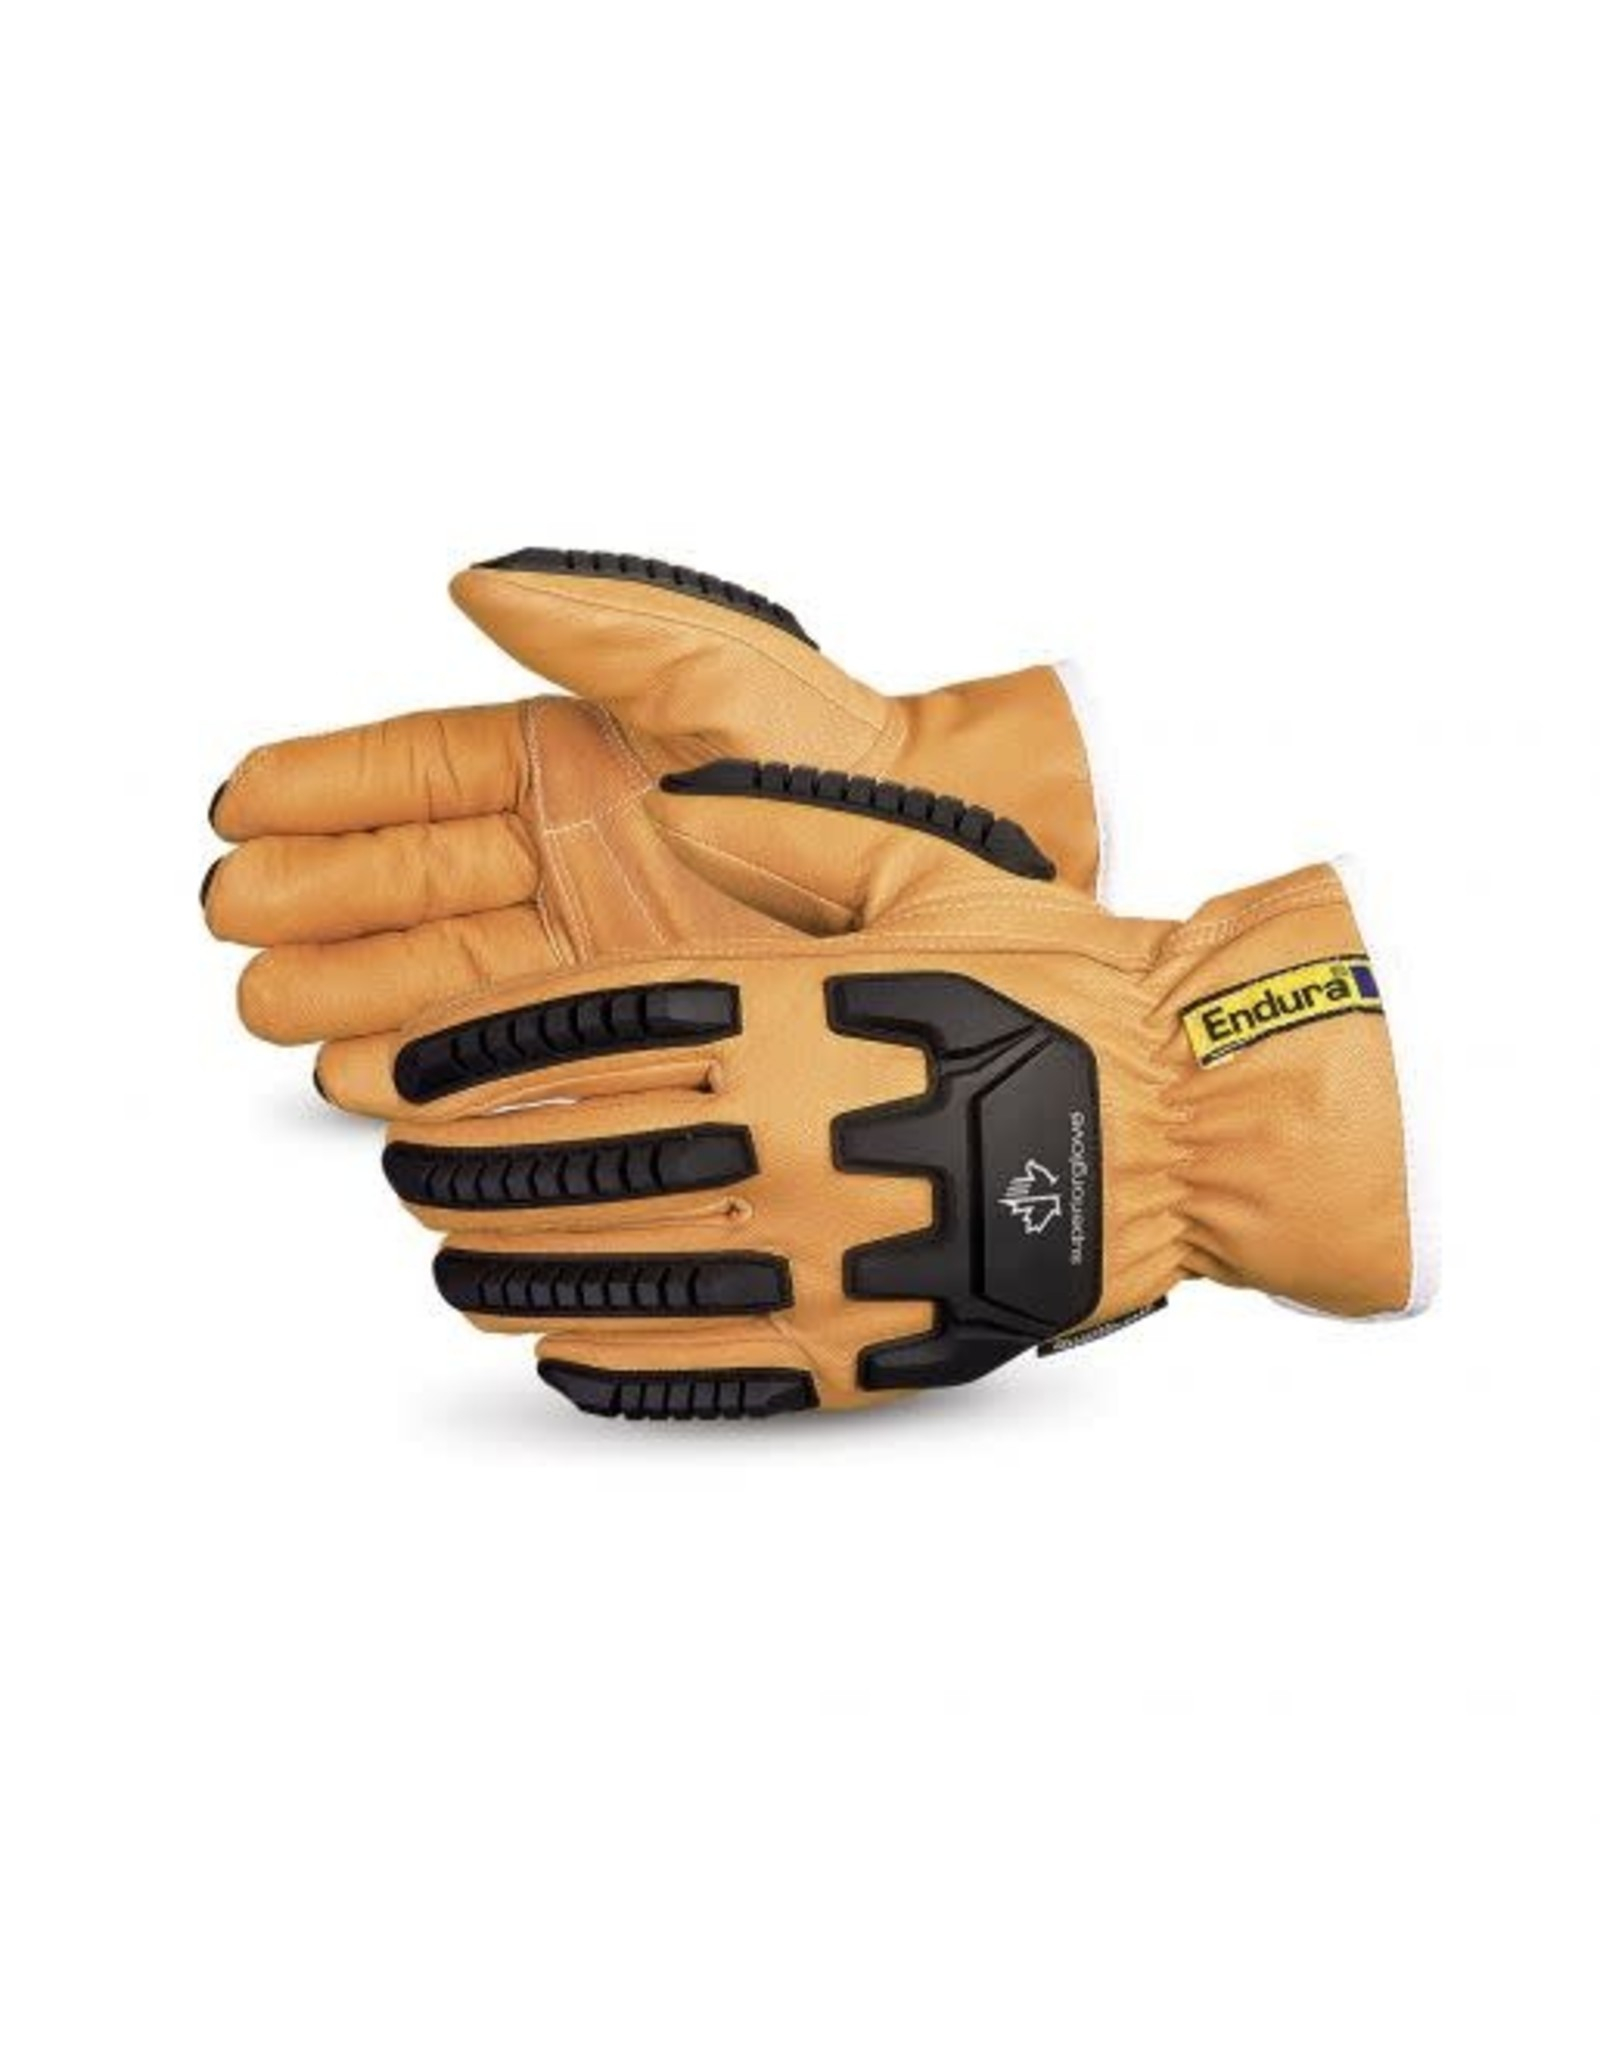 Superior Glove Superior Glove Endura Impact-Resistant Kevlar & Thinsulate - Lined Goatskin Driver Glove